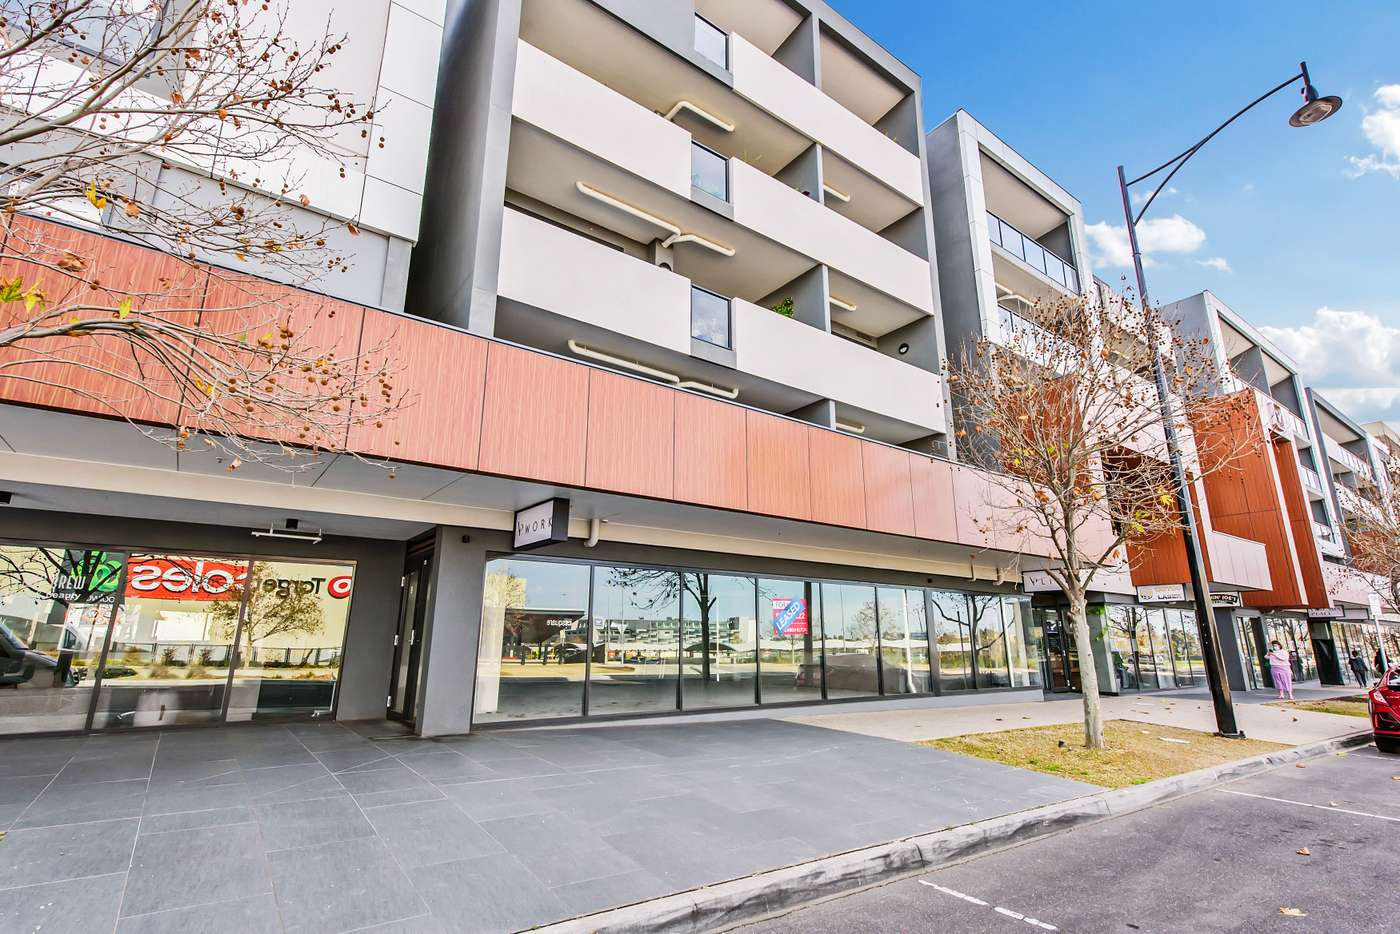 Main view of Homely apartment listing, 313/9 Commercial Road, Caroline Springs VIC 3023